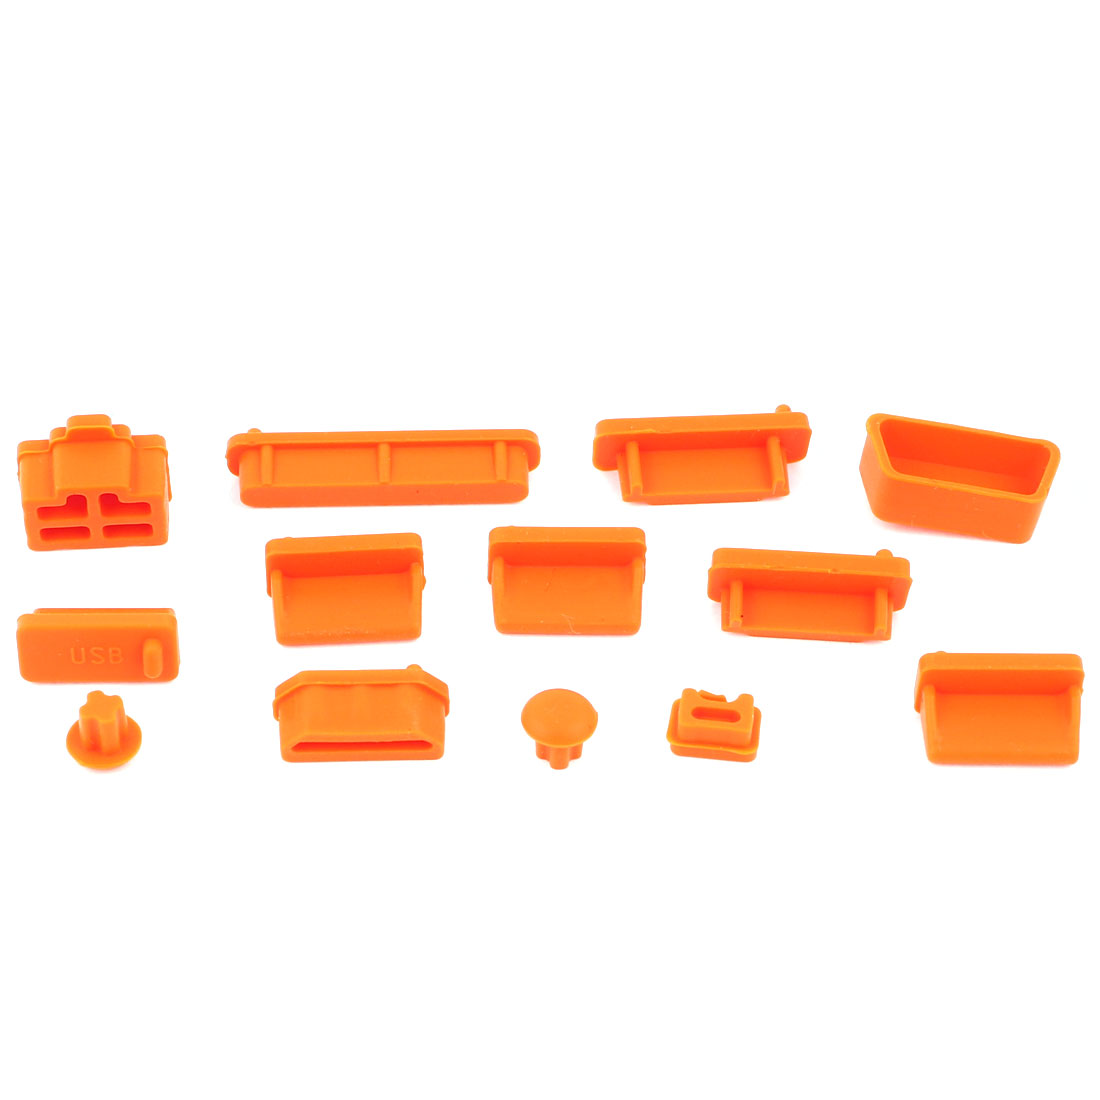 13pcs Orange Silicone Anti-Dust Connector Cover Stopper for Laptop Notebook